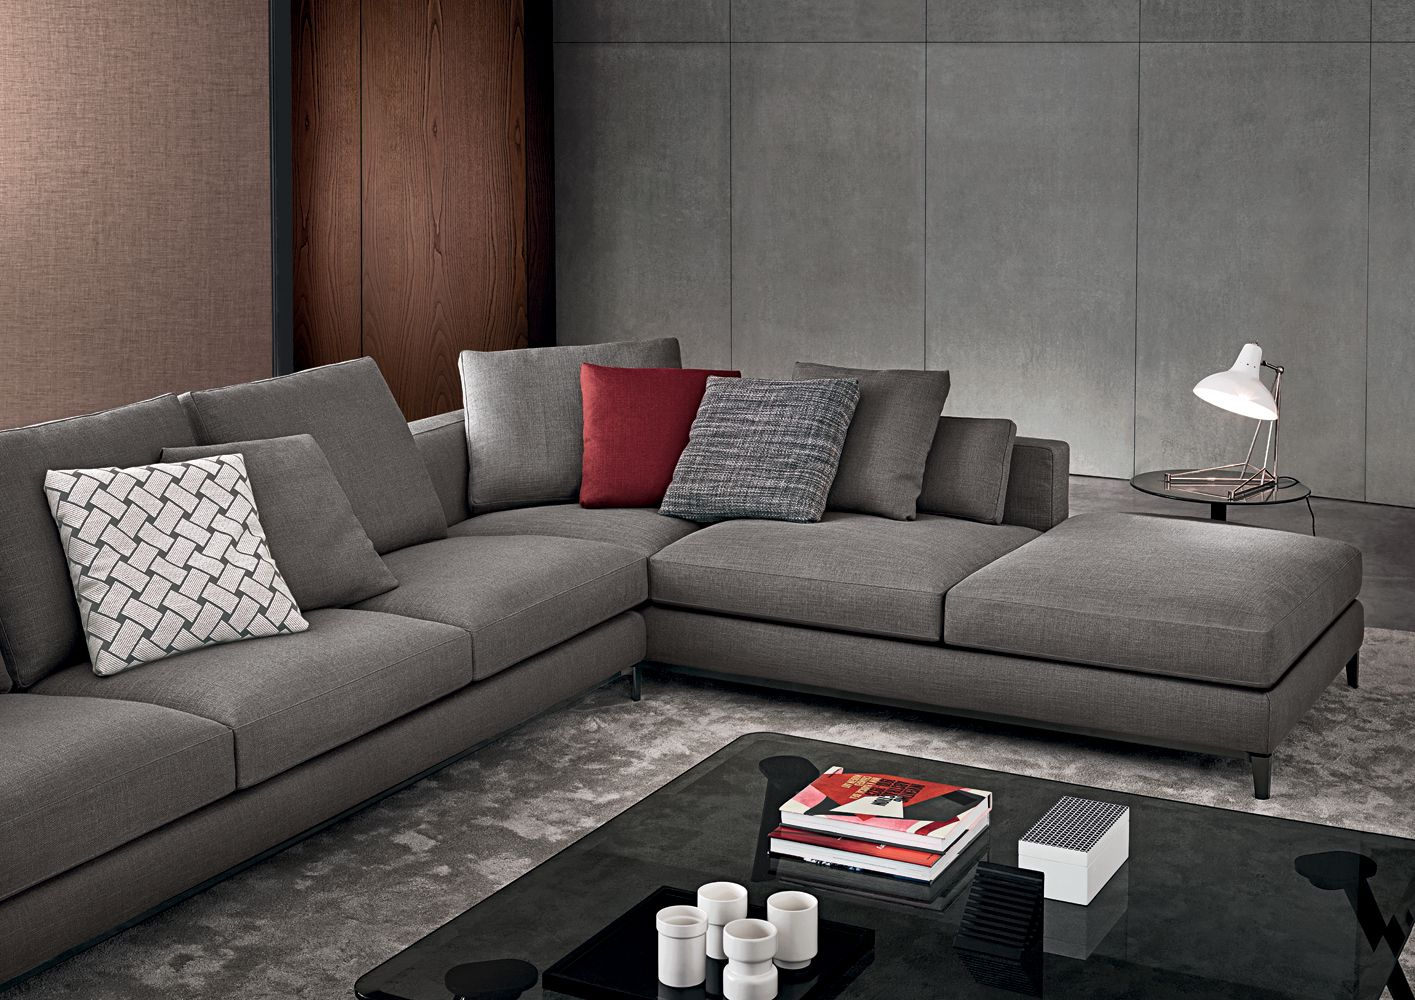 Pin By A M Khan On D 233 Cor Tv Area Lounge Sofa Living